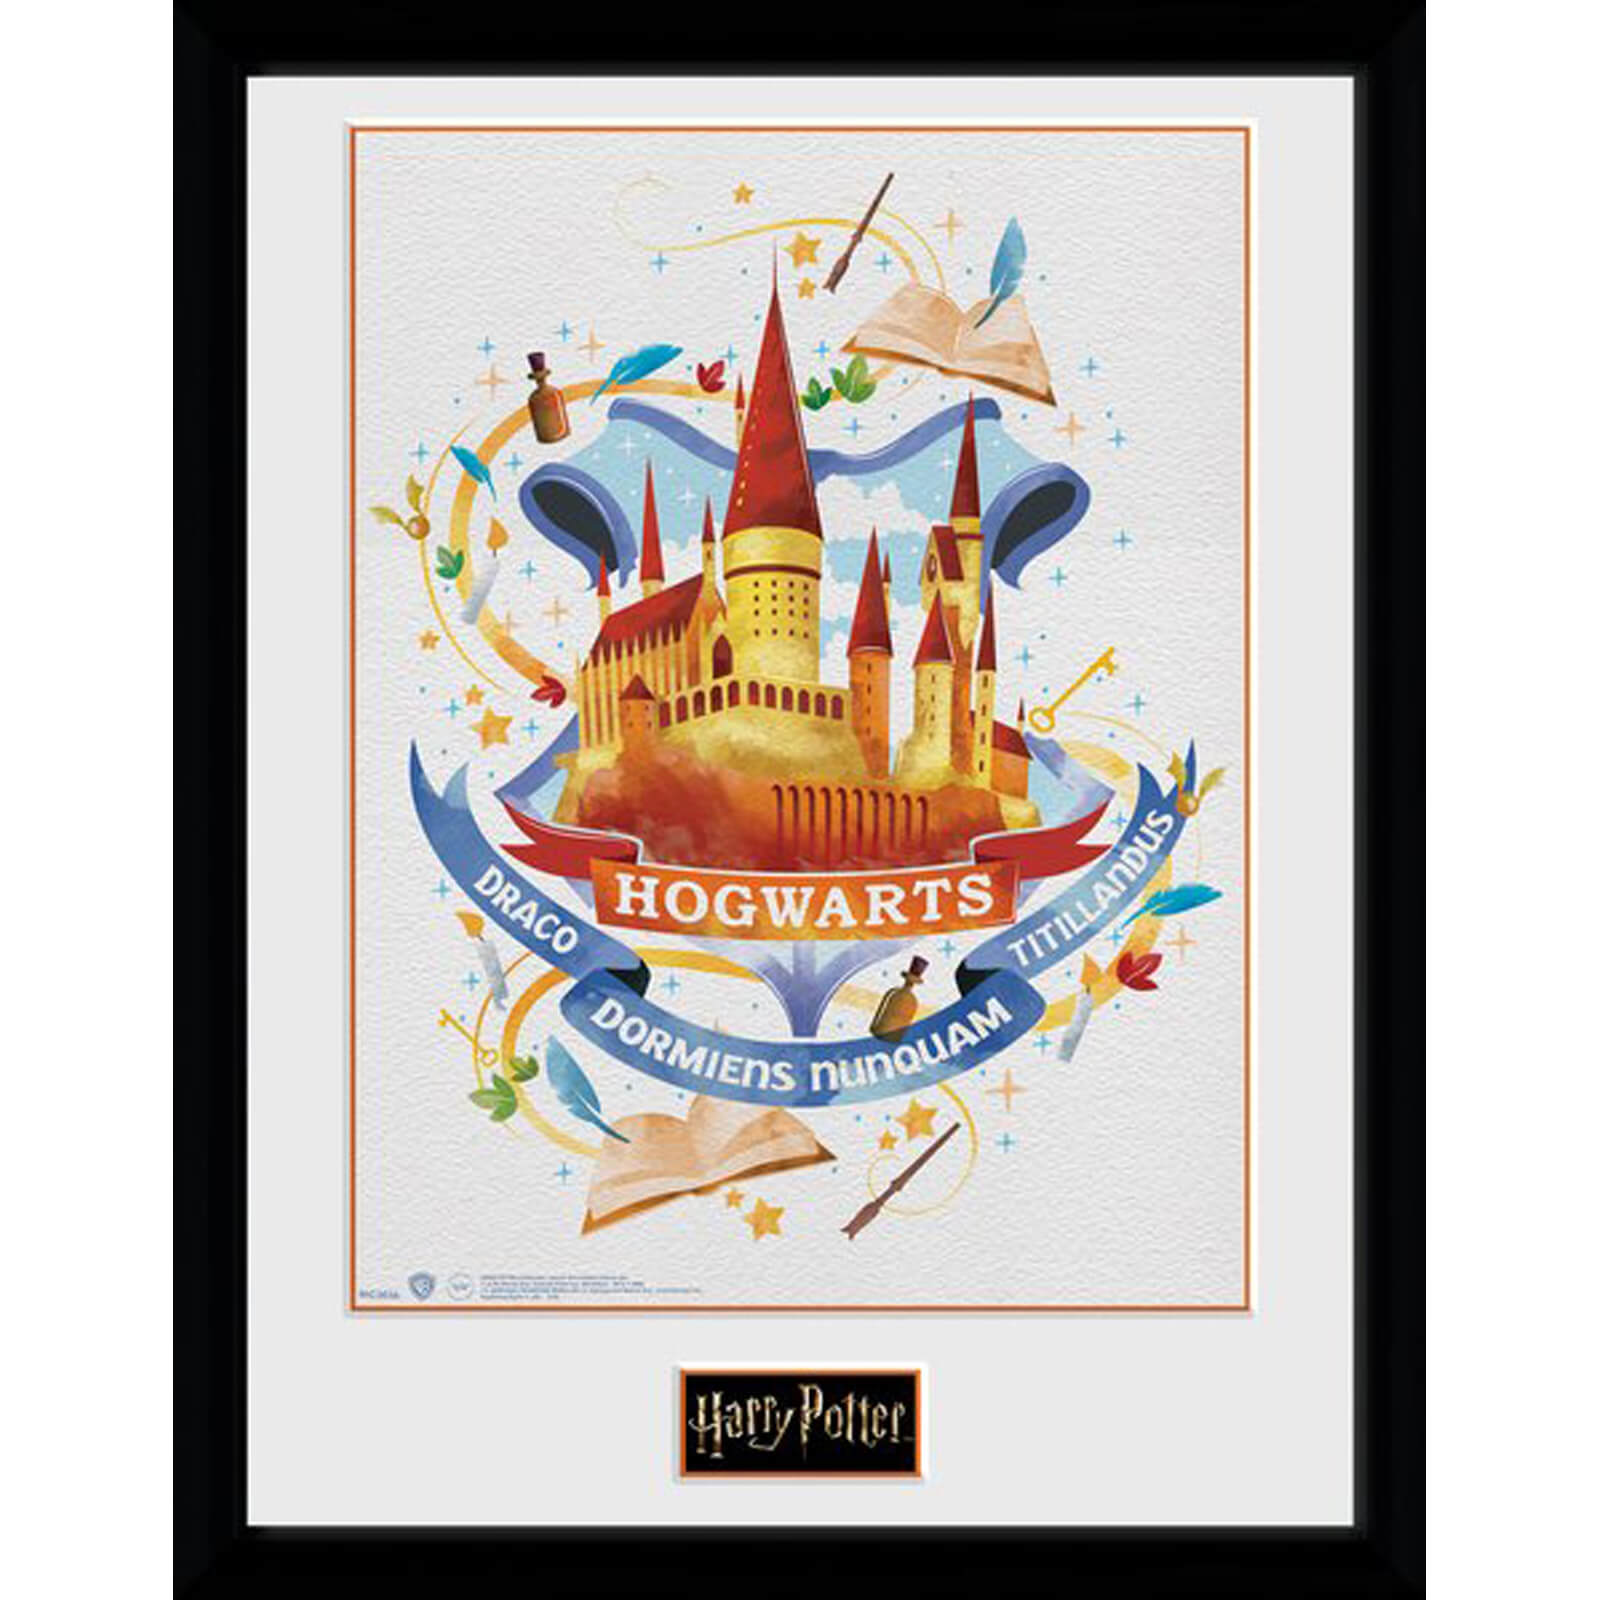 Harry Potter Hogwarts Paint 12 x 16 Inches Framed Photograph